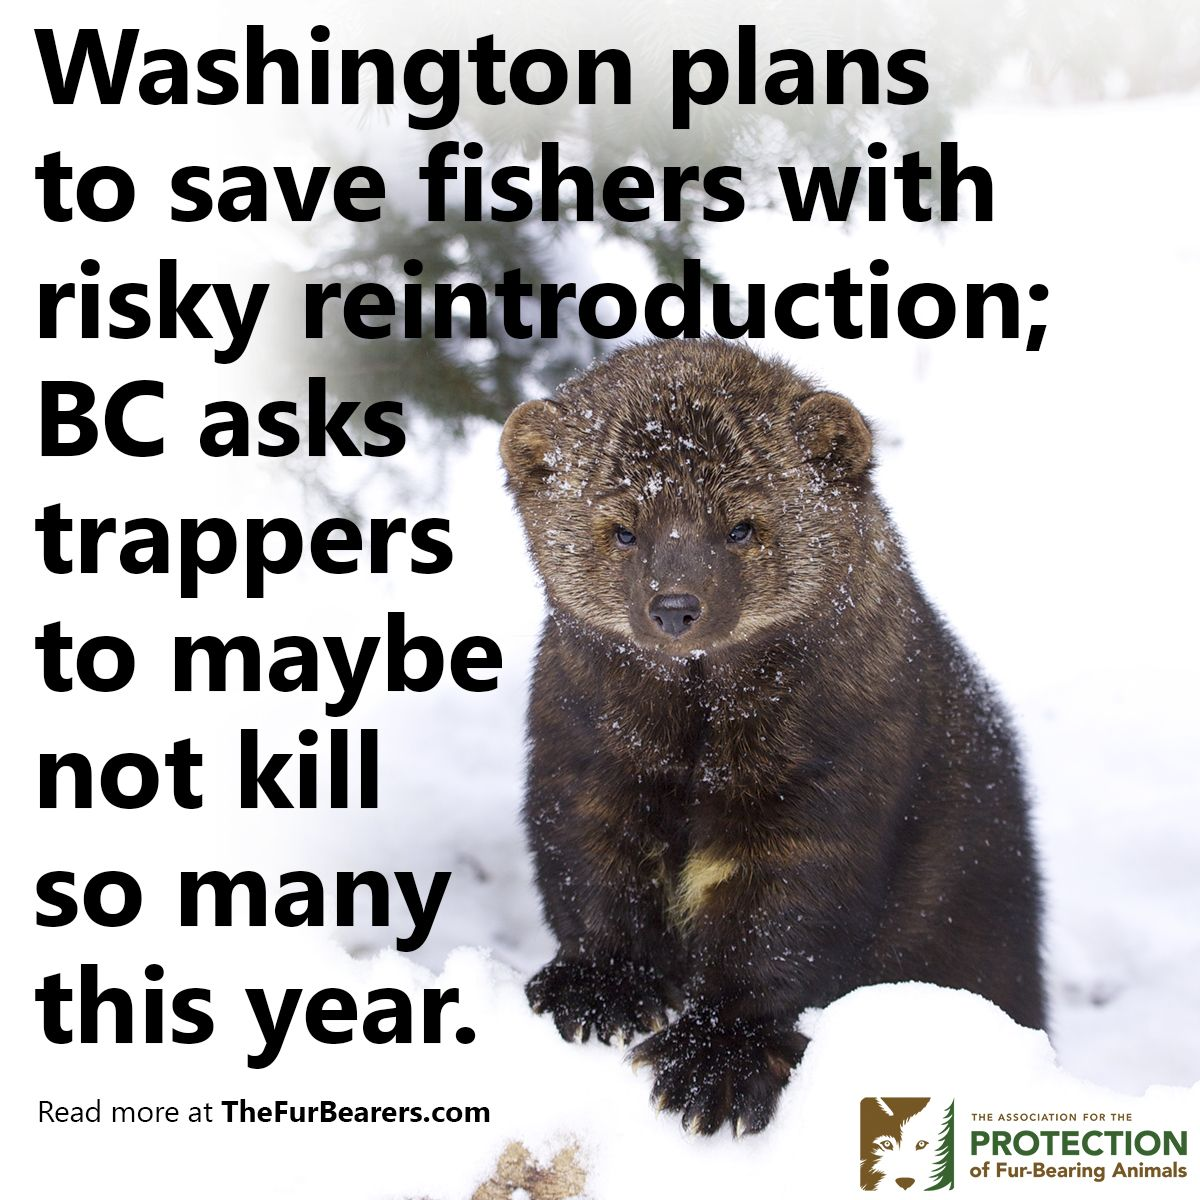 Washington state and the federal US government want to